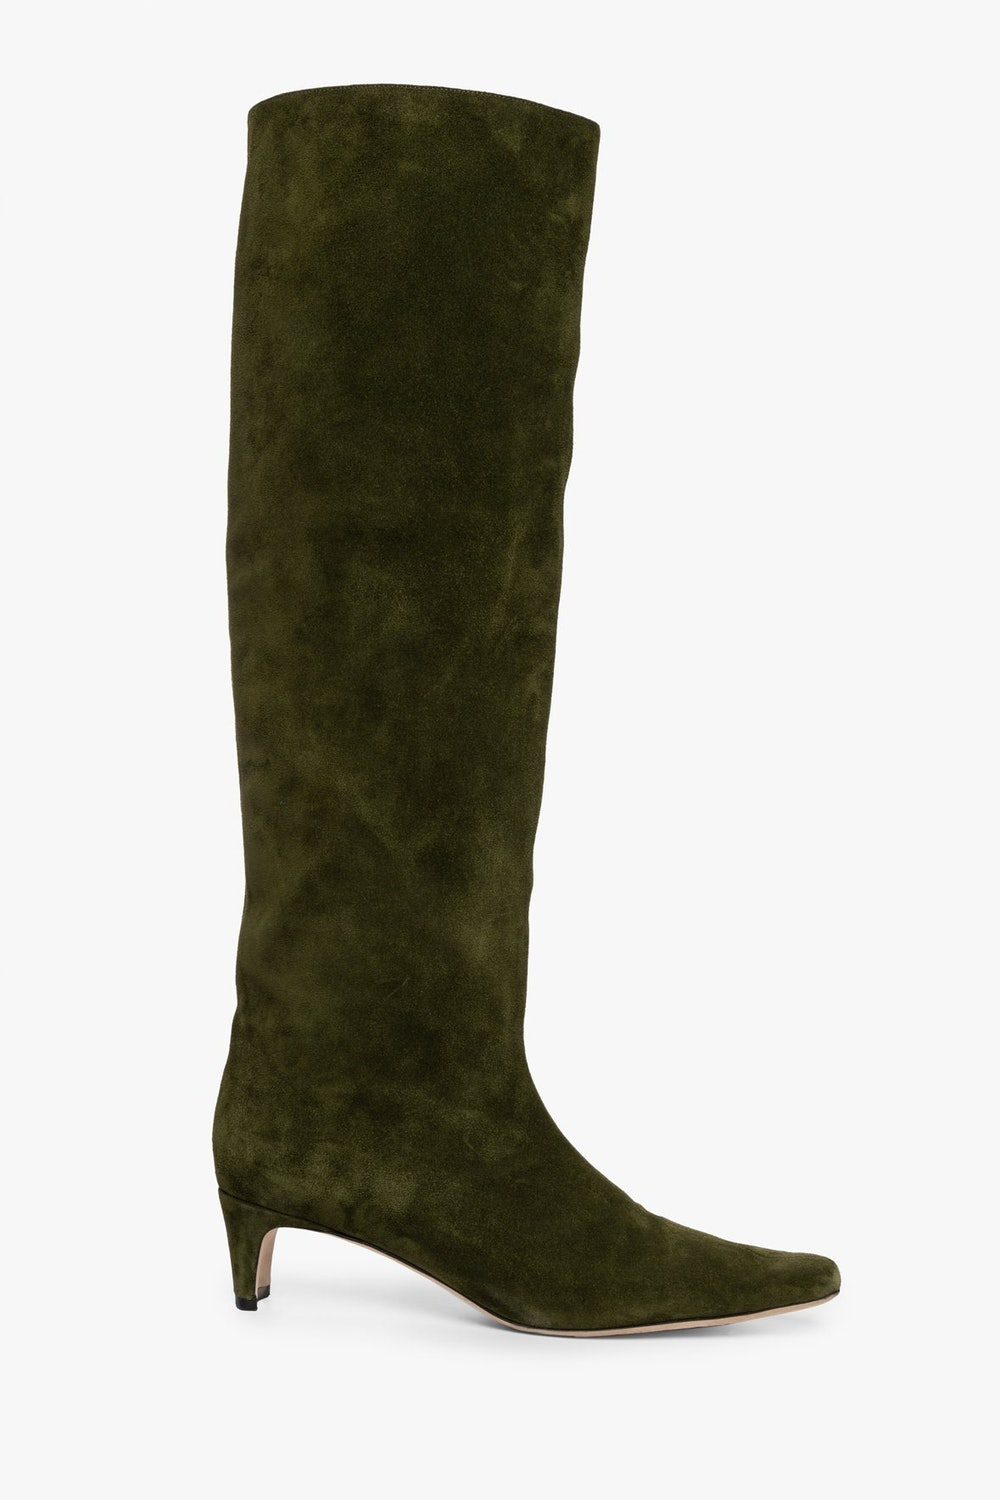 WALLY BOOT | OLIVE SUEDE